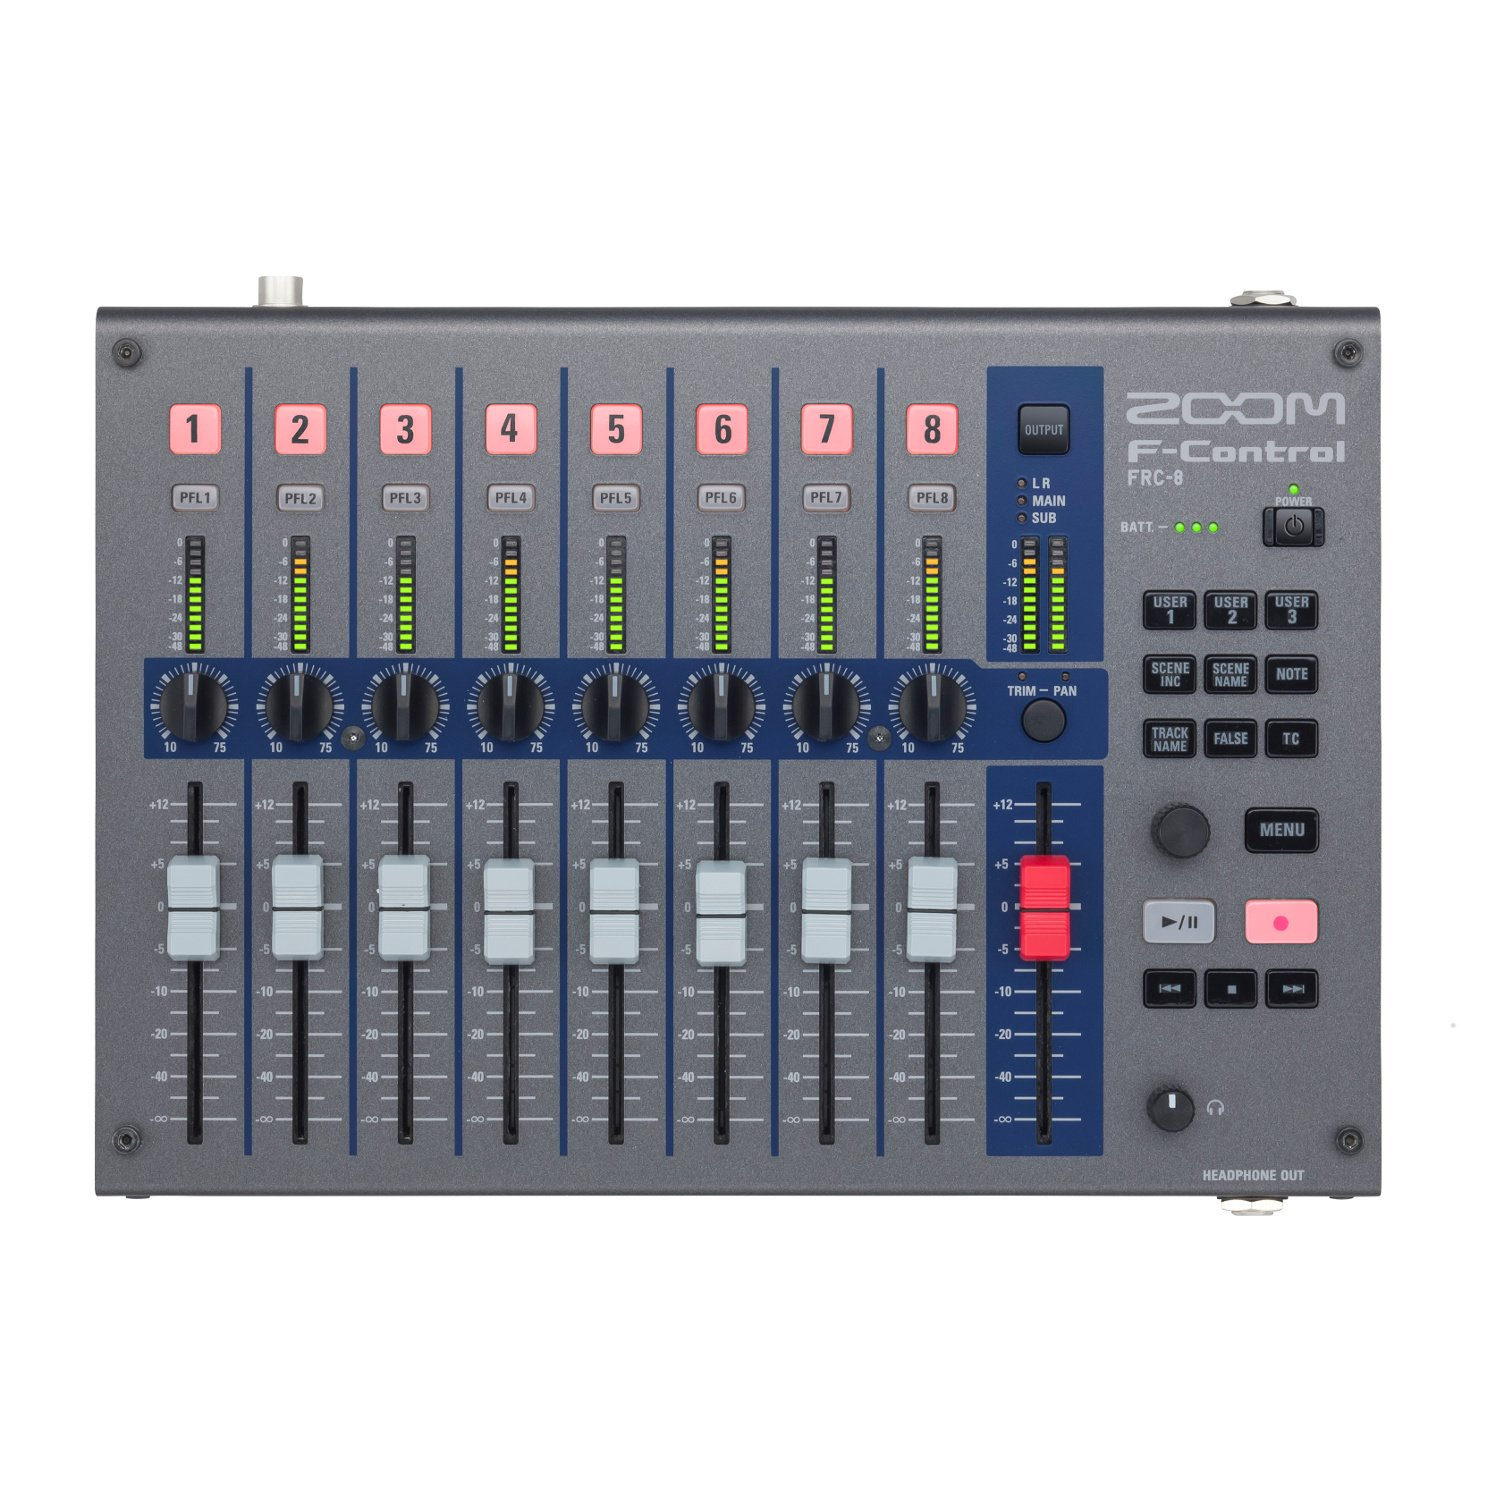 Zoom FRC-8 FRC-8 F-Series Remote Controller FRC-8